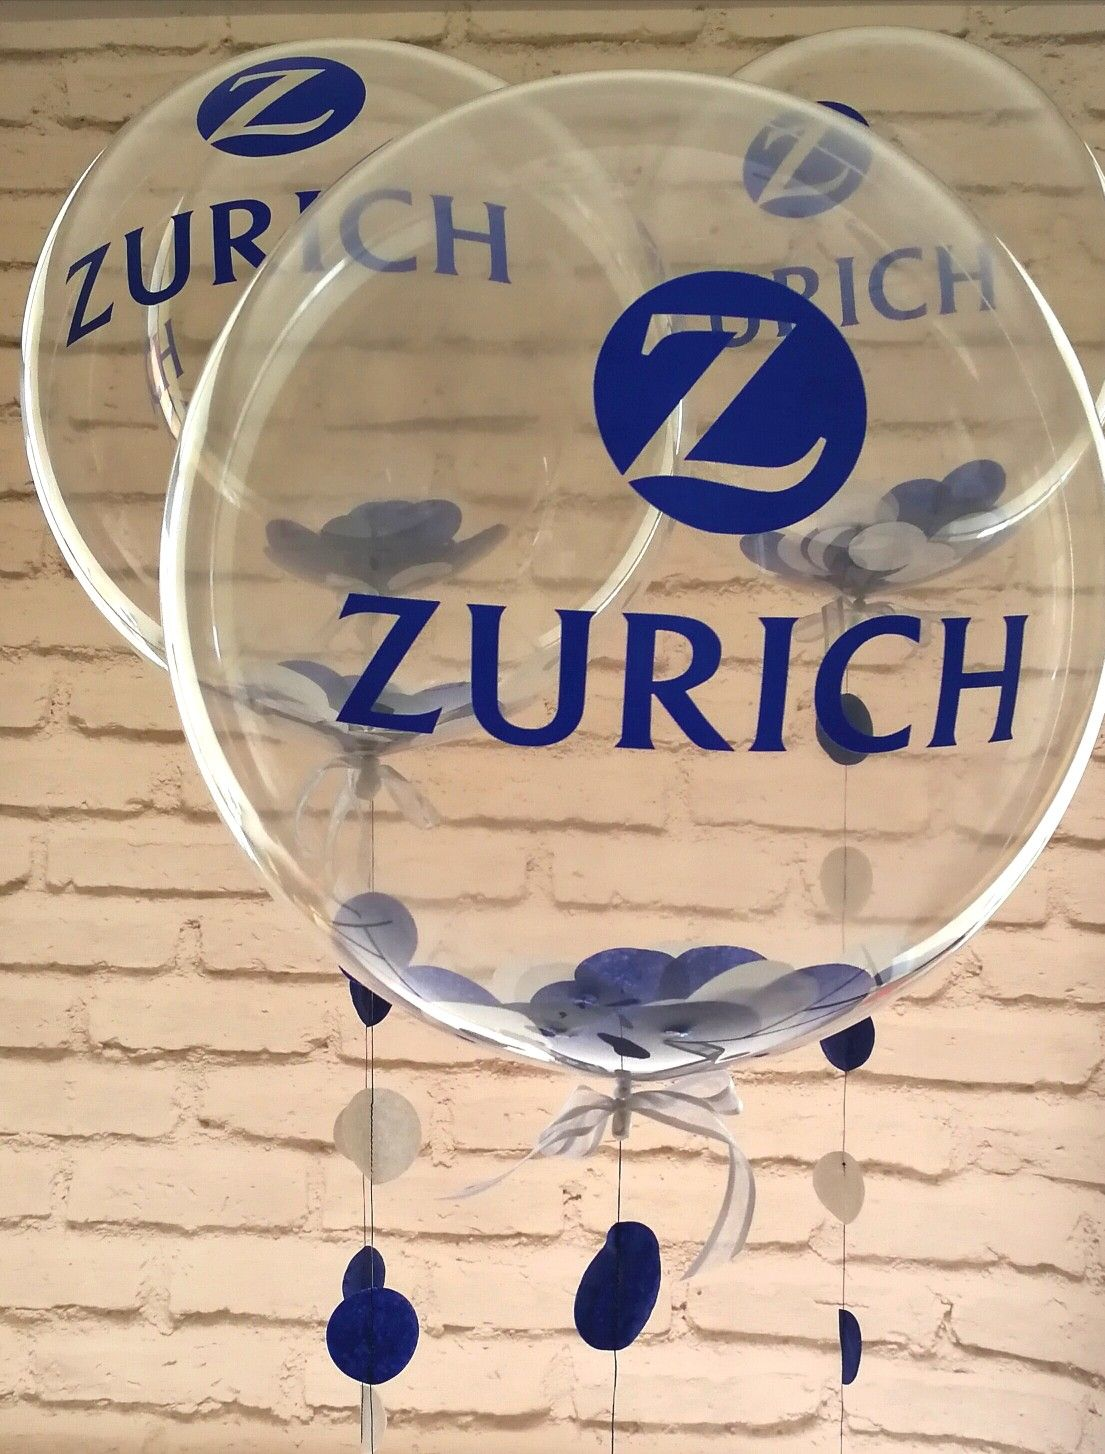 Zurich branded balloons for one of the top insurance firms